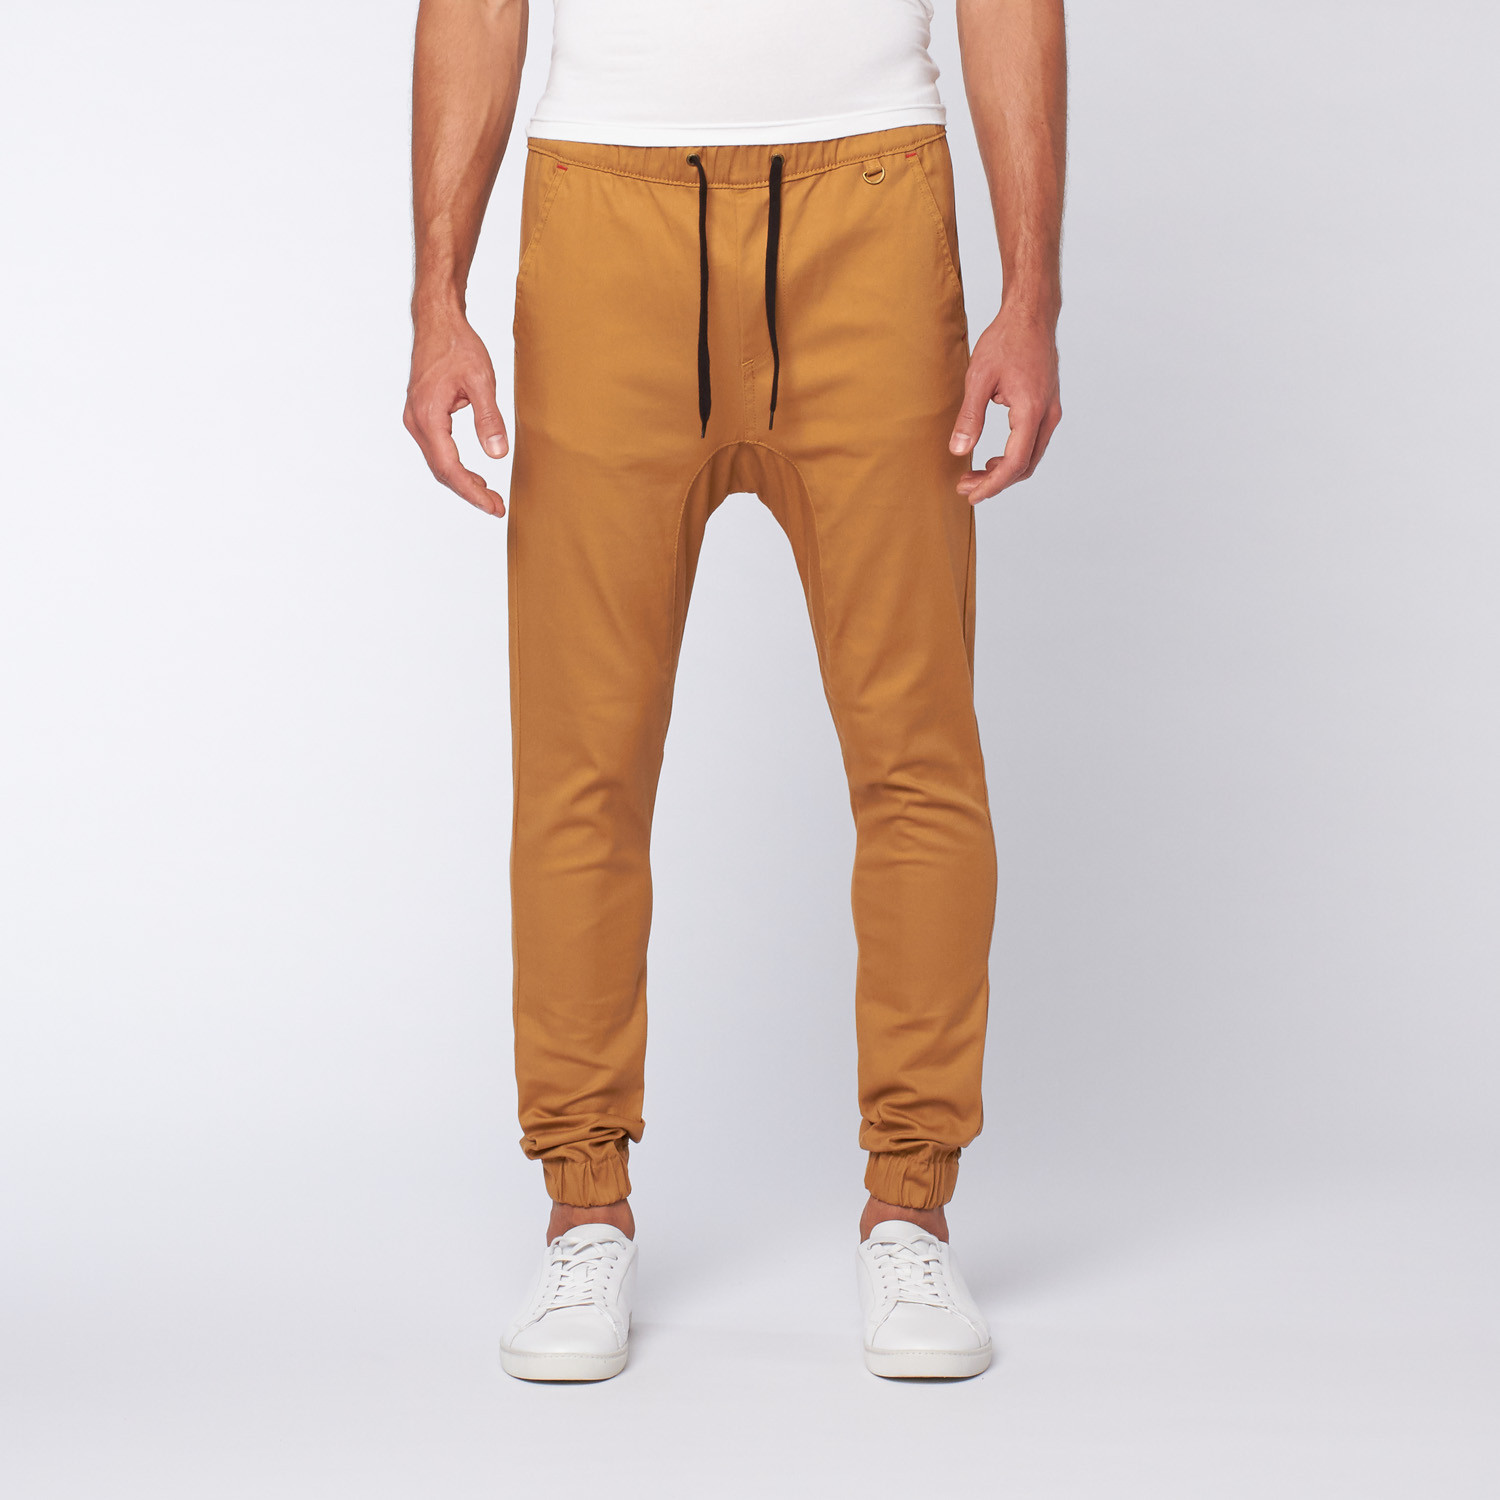 Find drop crotch joggers at ShopStyle. Shop the latest collection of drop crotch joggers from the most popular stores - all in one place.